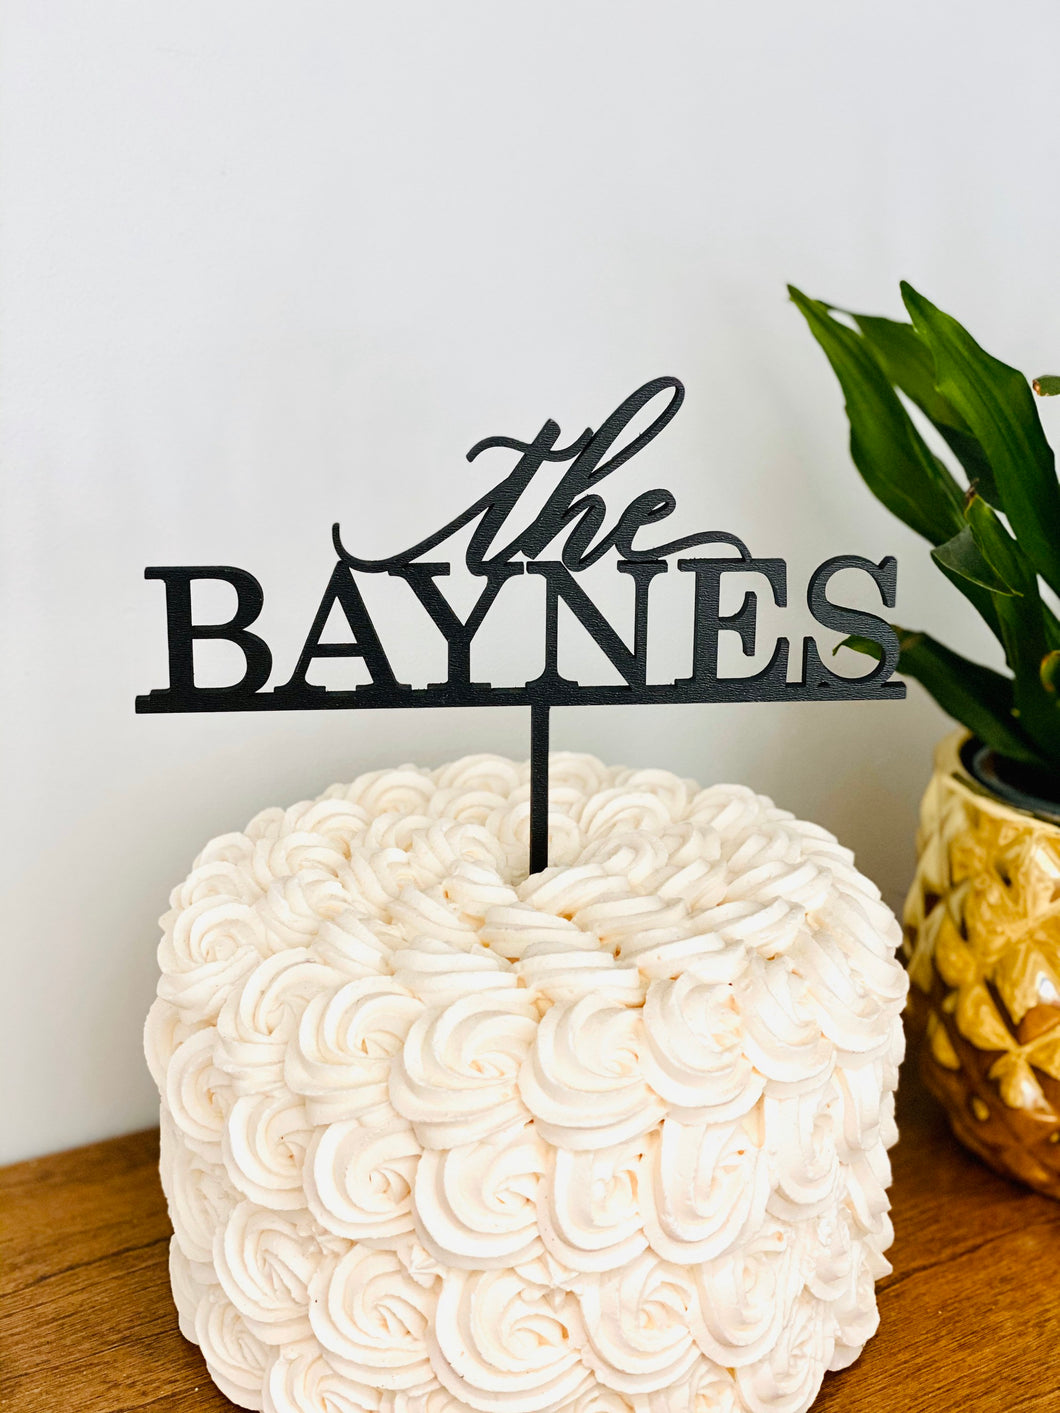 Personalized The Last Name Cake Topper, 6